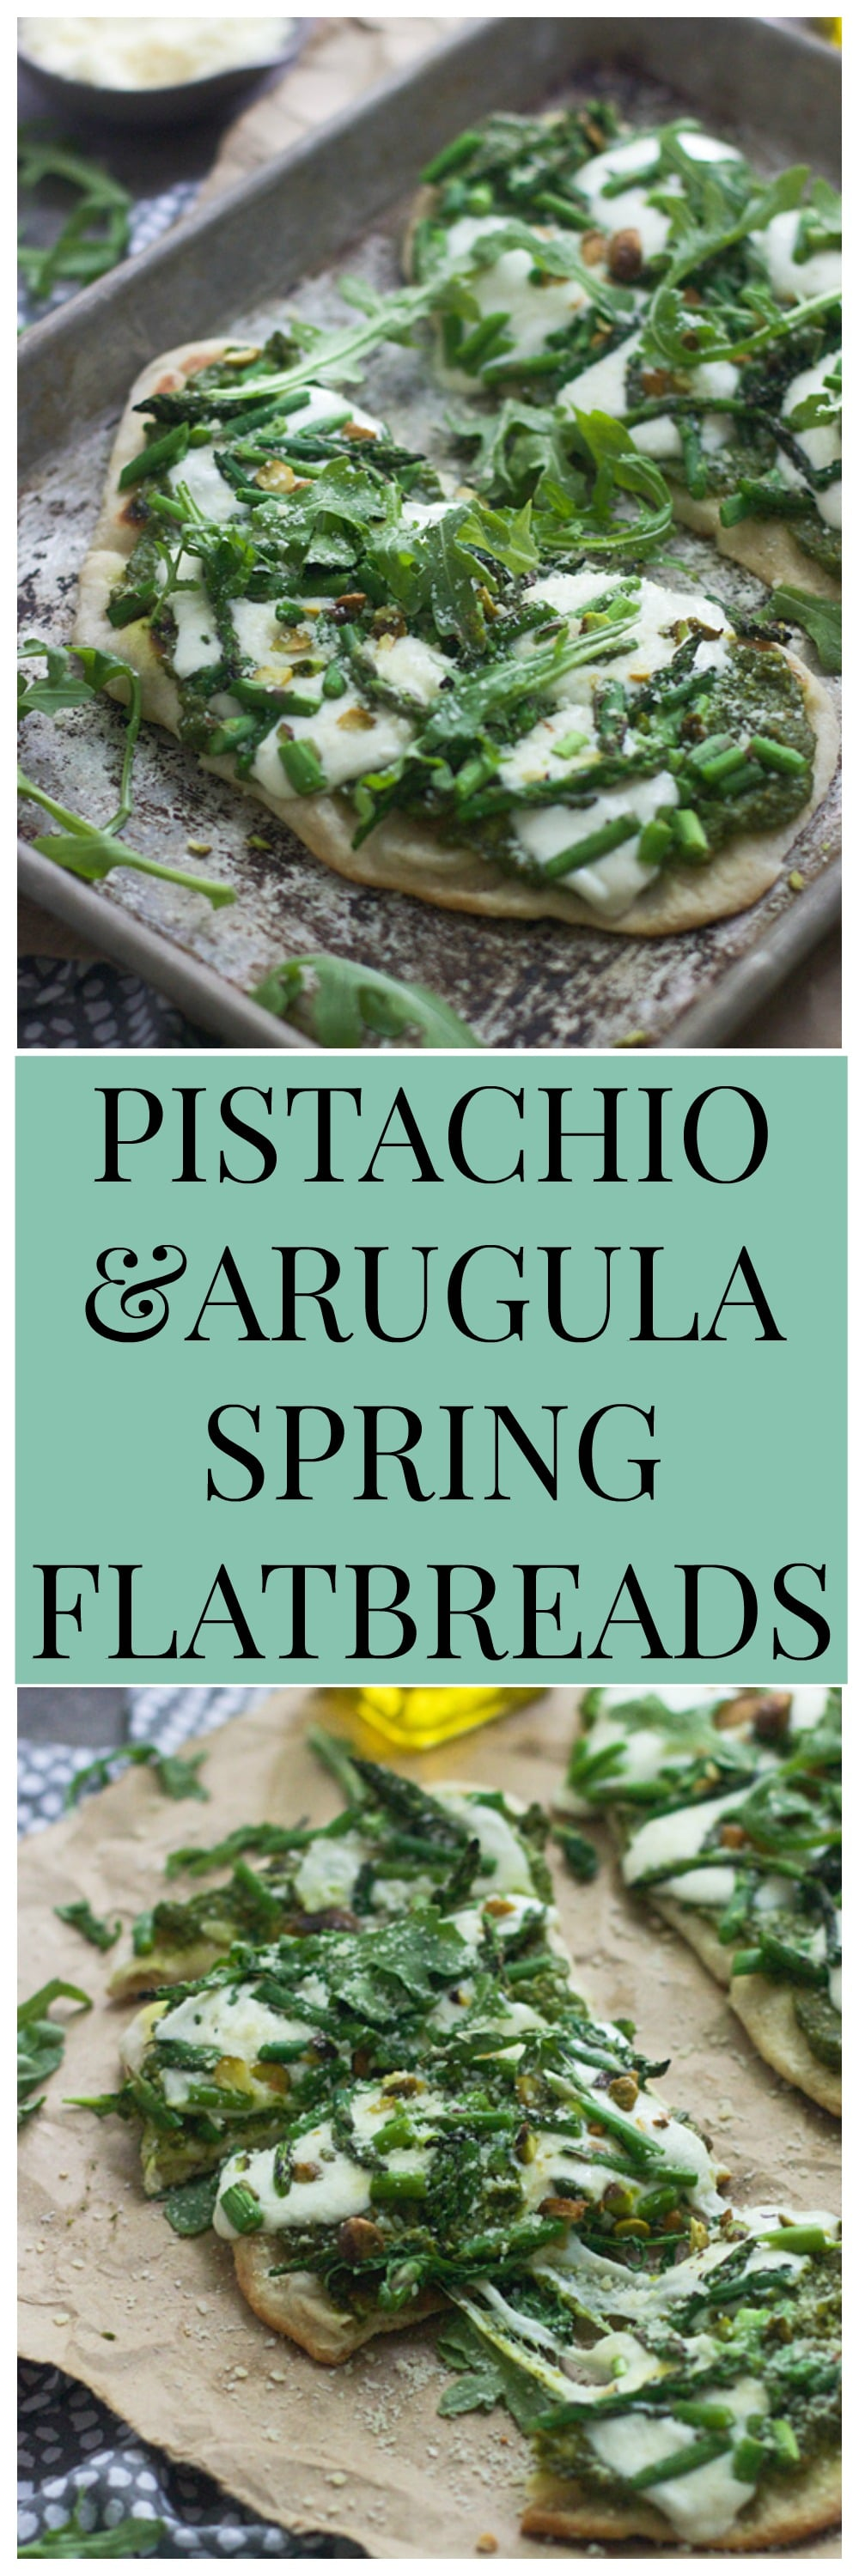 Pistachio and Arugula Pesto Spring Flatbreads